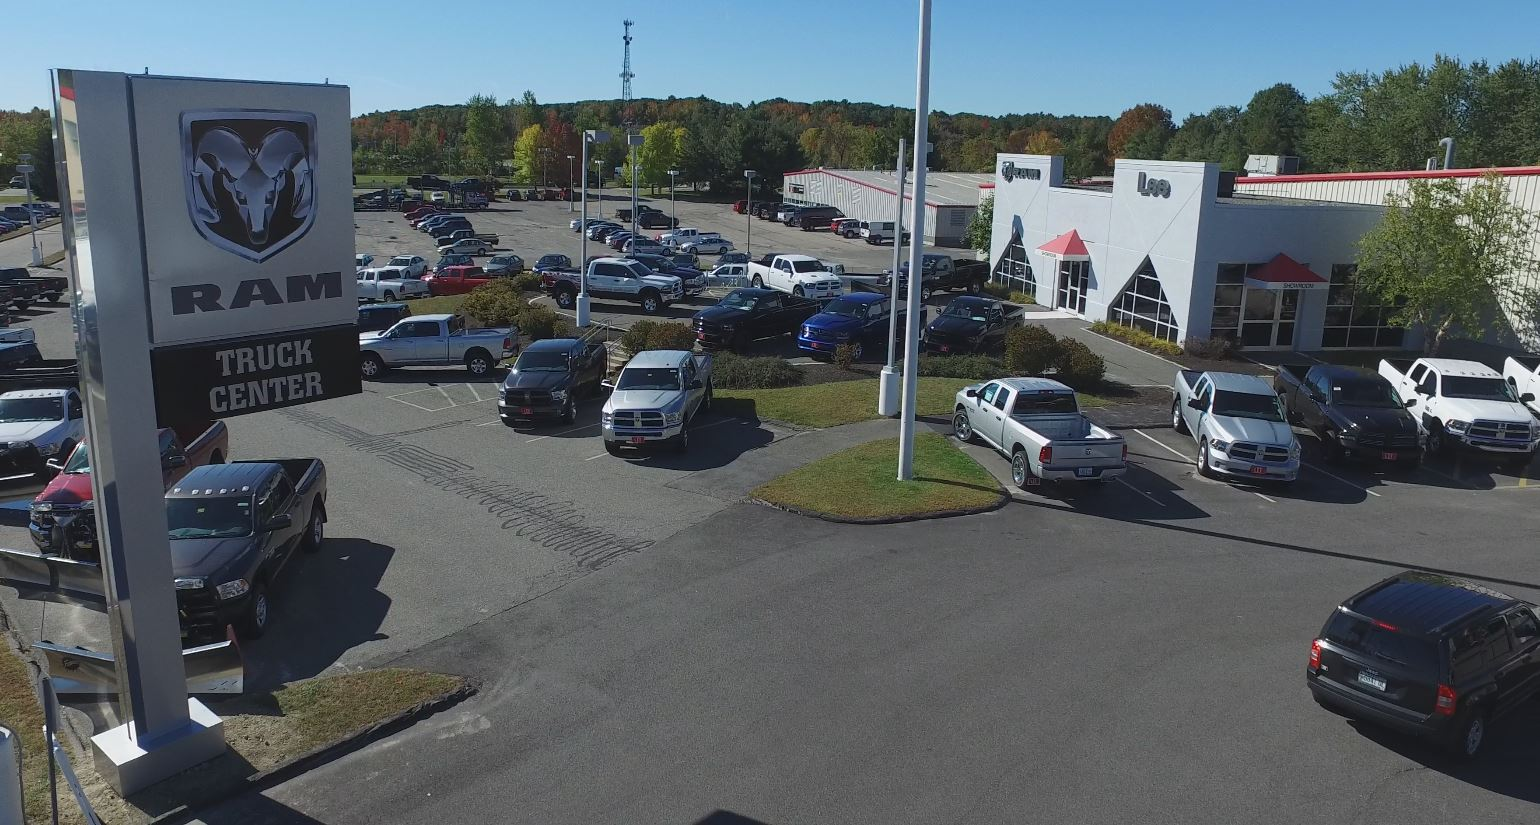 Lee Ram Truck Center, Maine's Only Dedicated Ram Truck Showroom